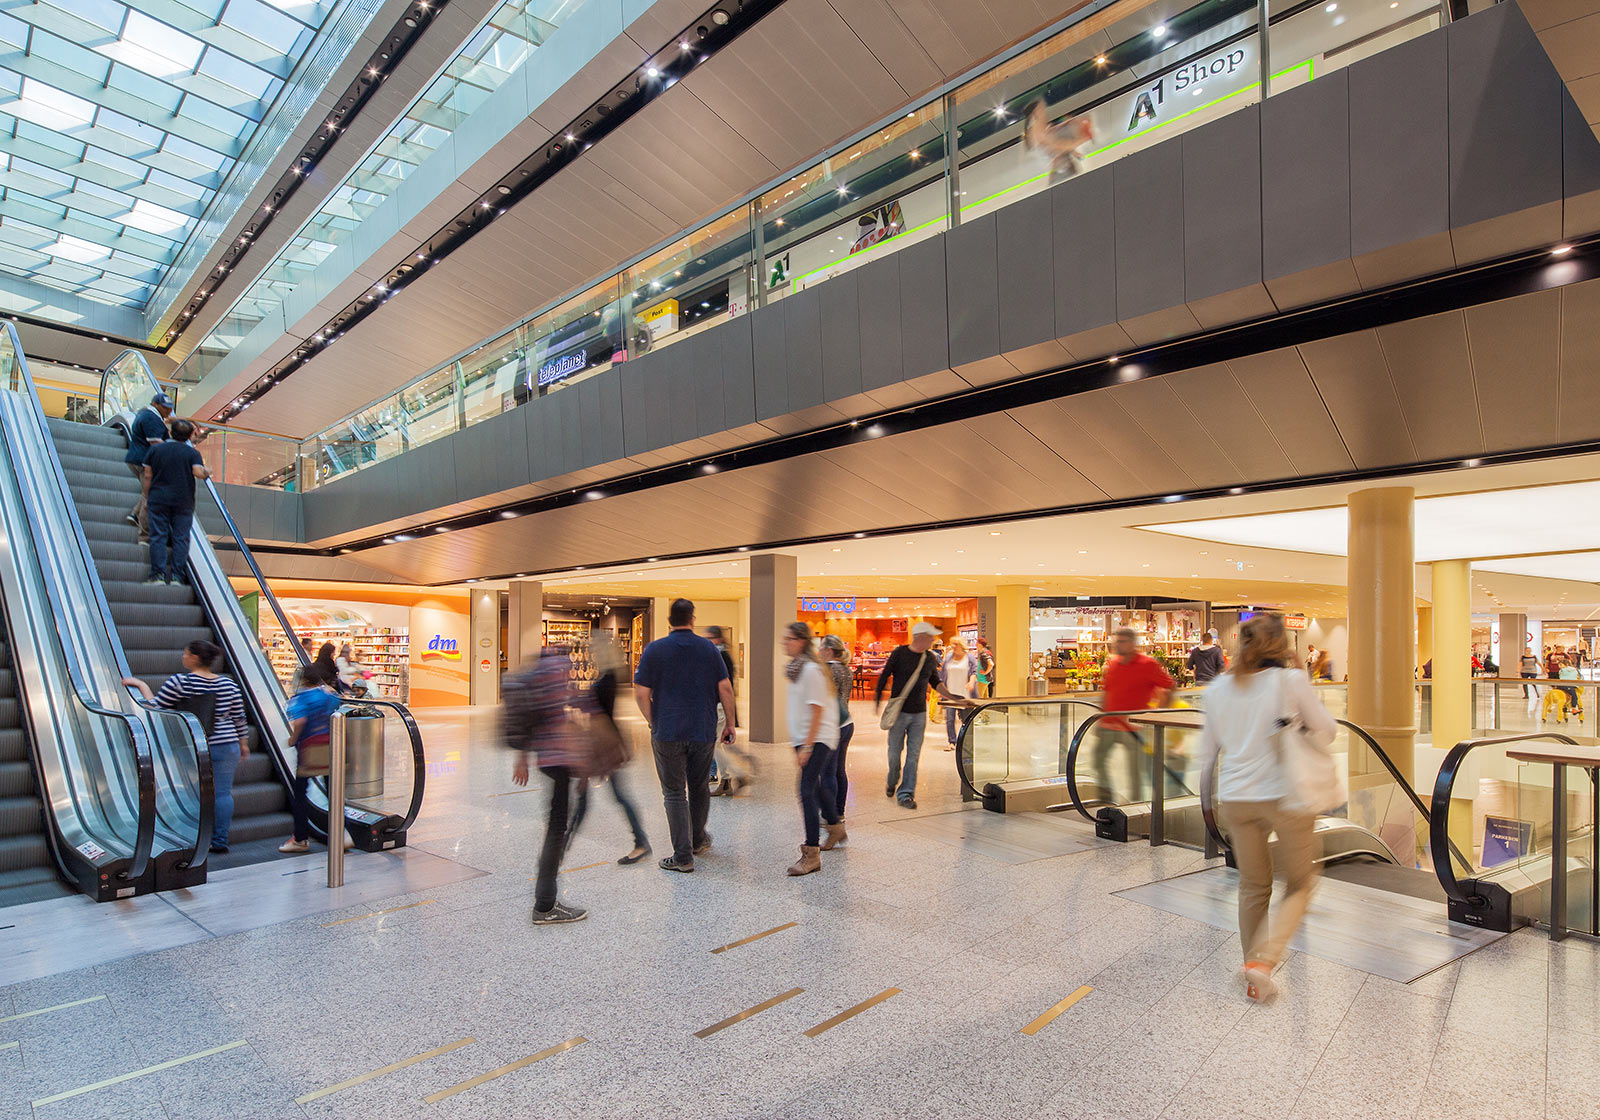 The escalators improve customer orientation and provide access to the new foodcourt. Photo copyright: © c) Innfocus Photography, Jean-Stéphane Mus